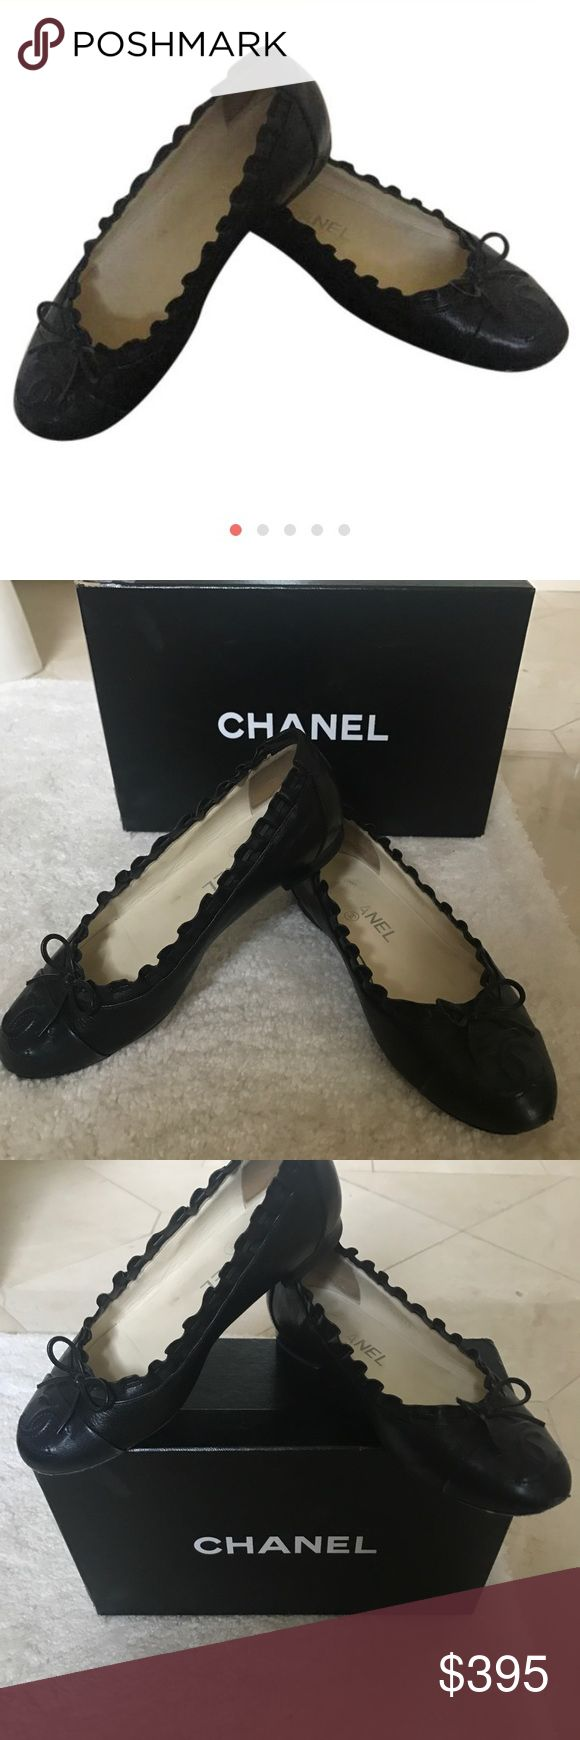 Chanel Ballerines Chanel Ballerines gently used scuff on soles CHANEL Shoes Flats & Loafers